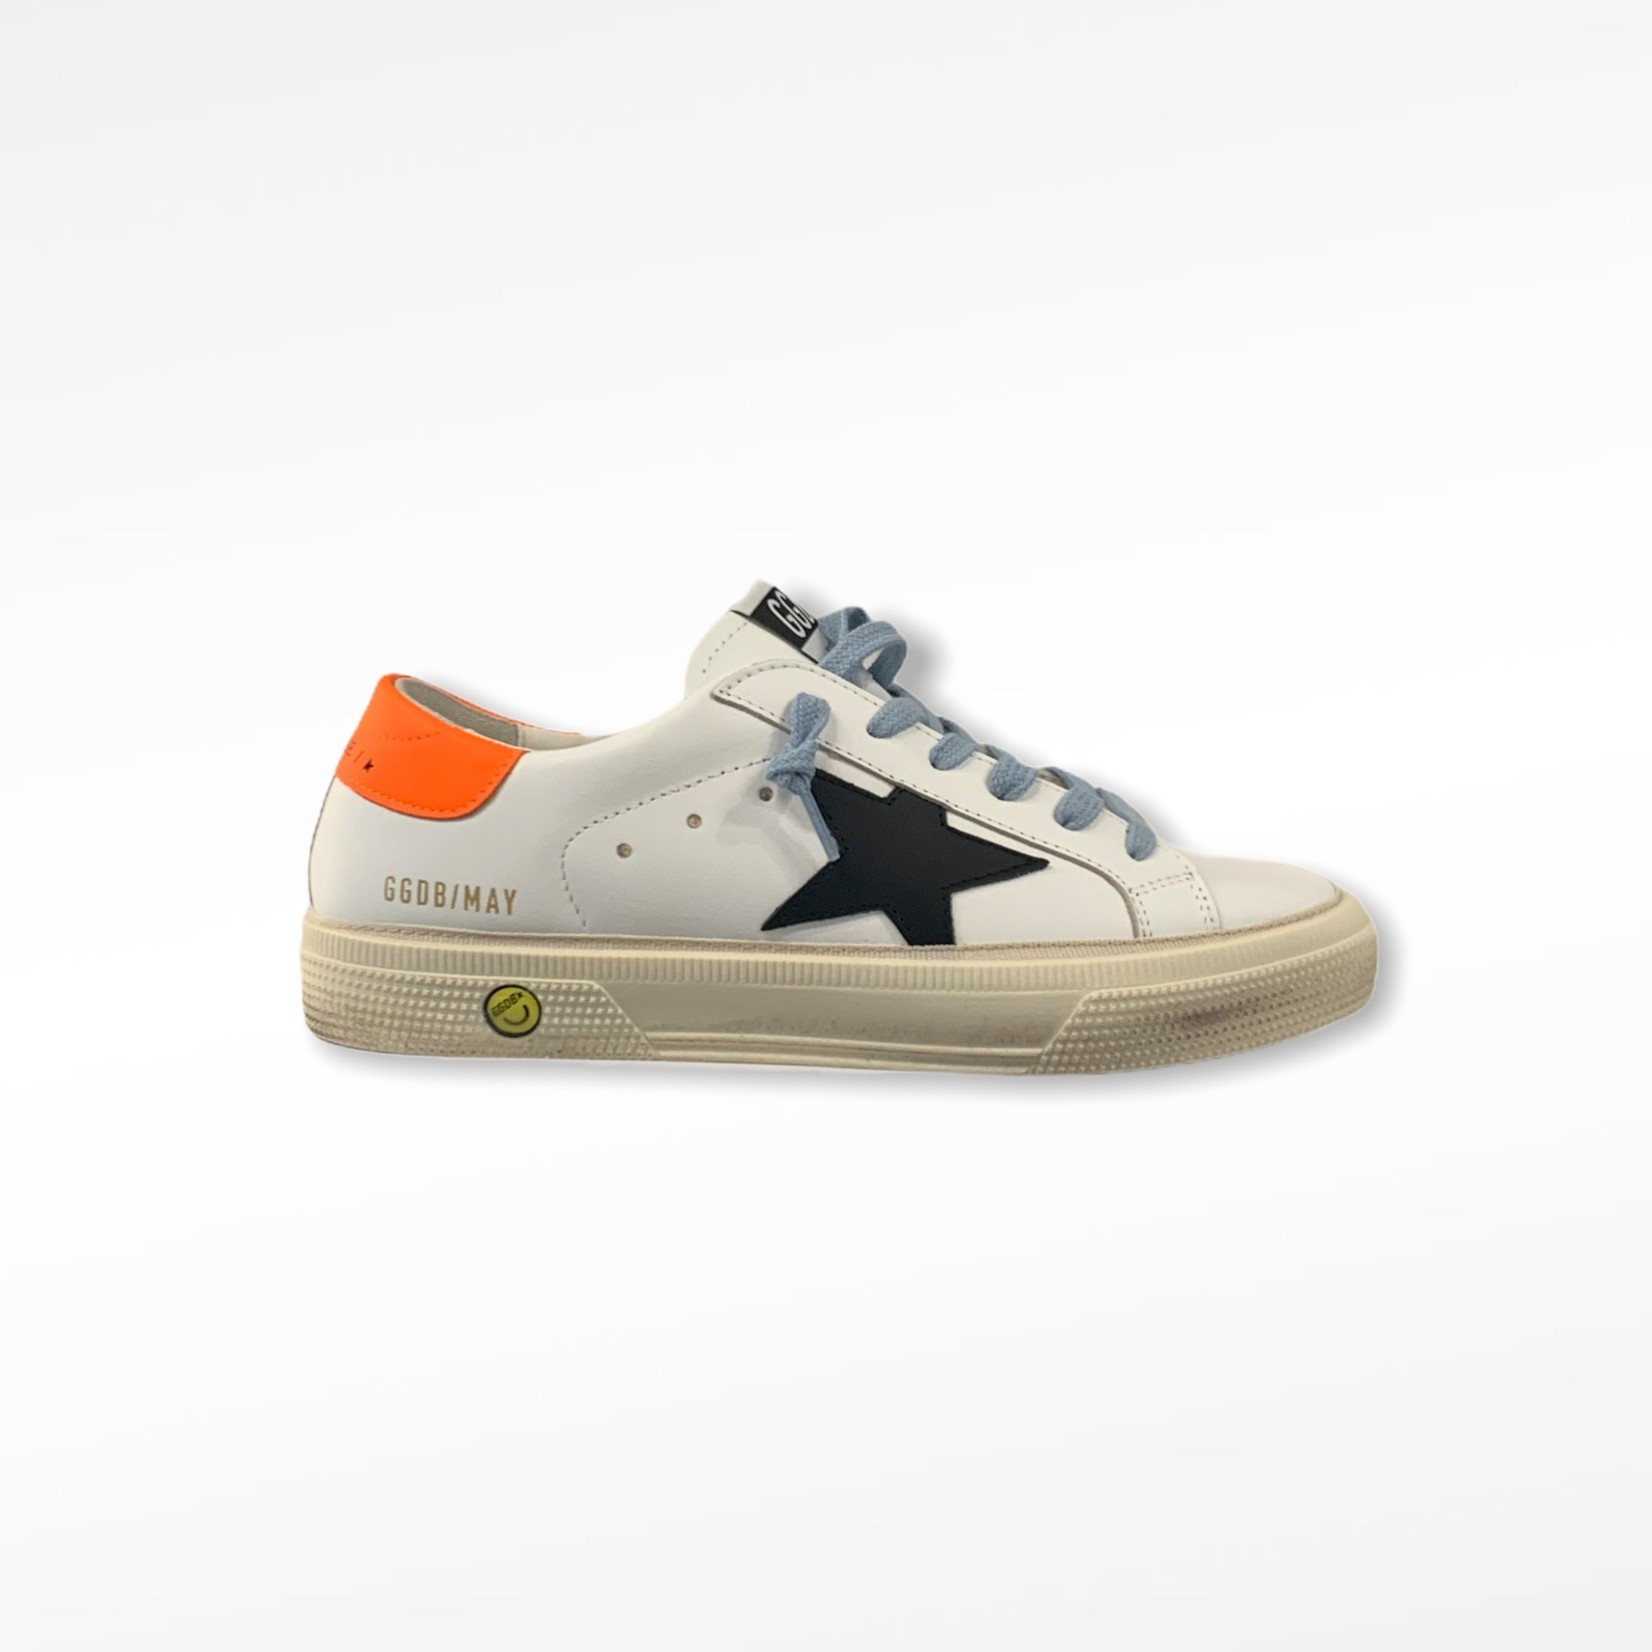 Golden Goose may leather upper star and heel